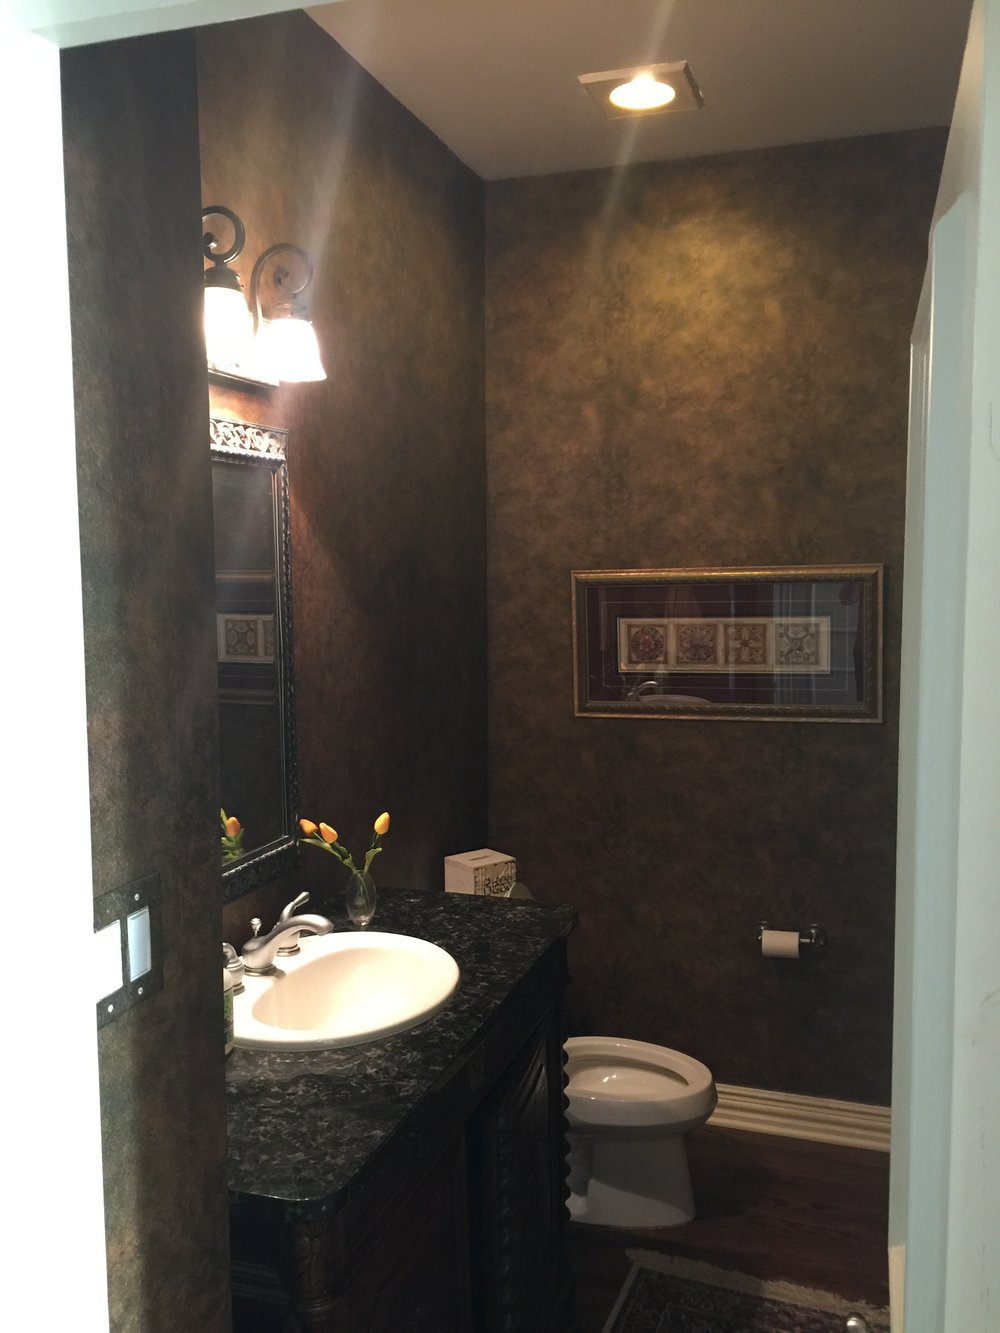 Bathroom Remodel - Southlake TX - Before and After